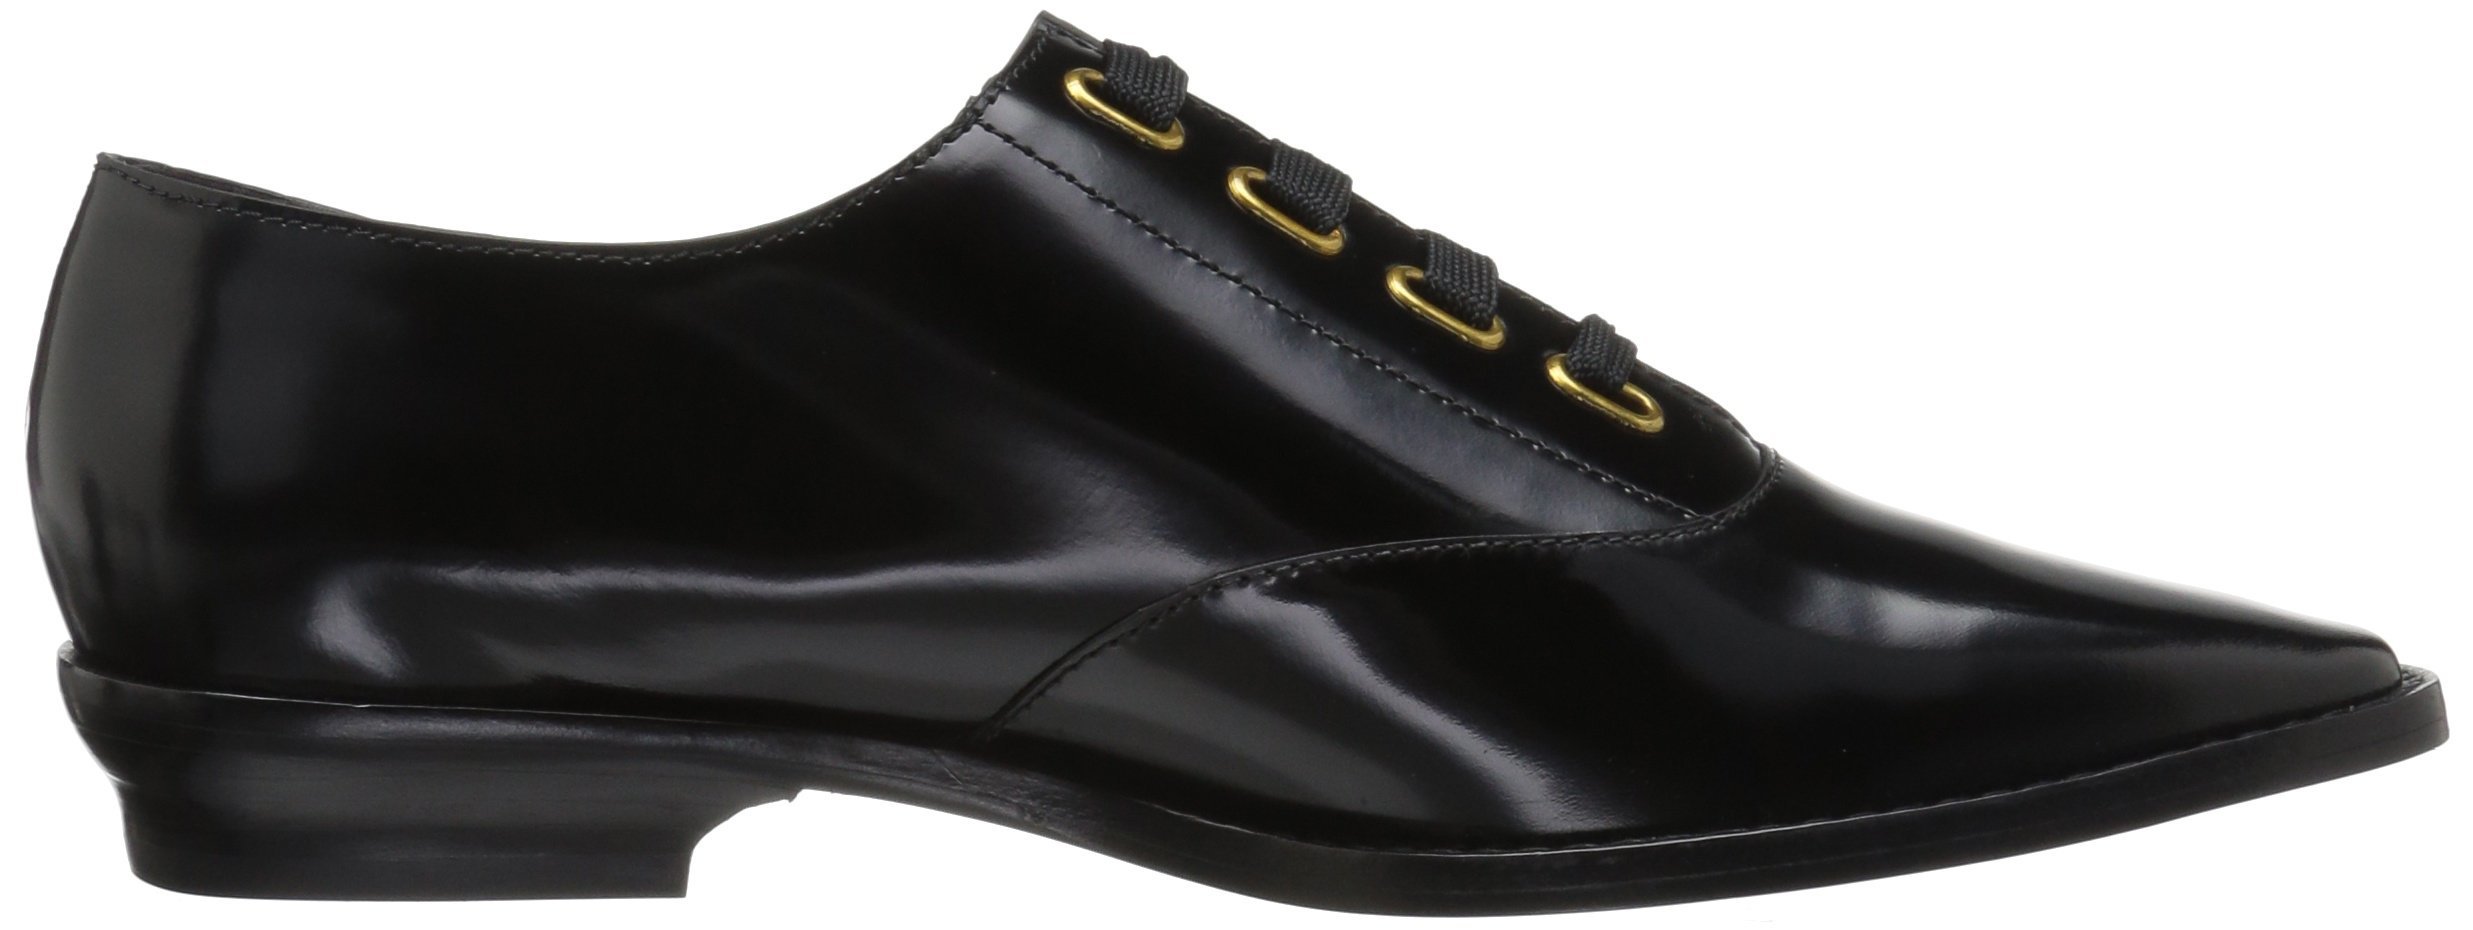 Marc Jacobs Women's Brittany Lace up Oxford, Black, 37 M EU (7 US) by Marc Jacobs (Image #7)